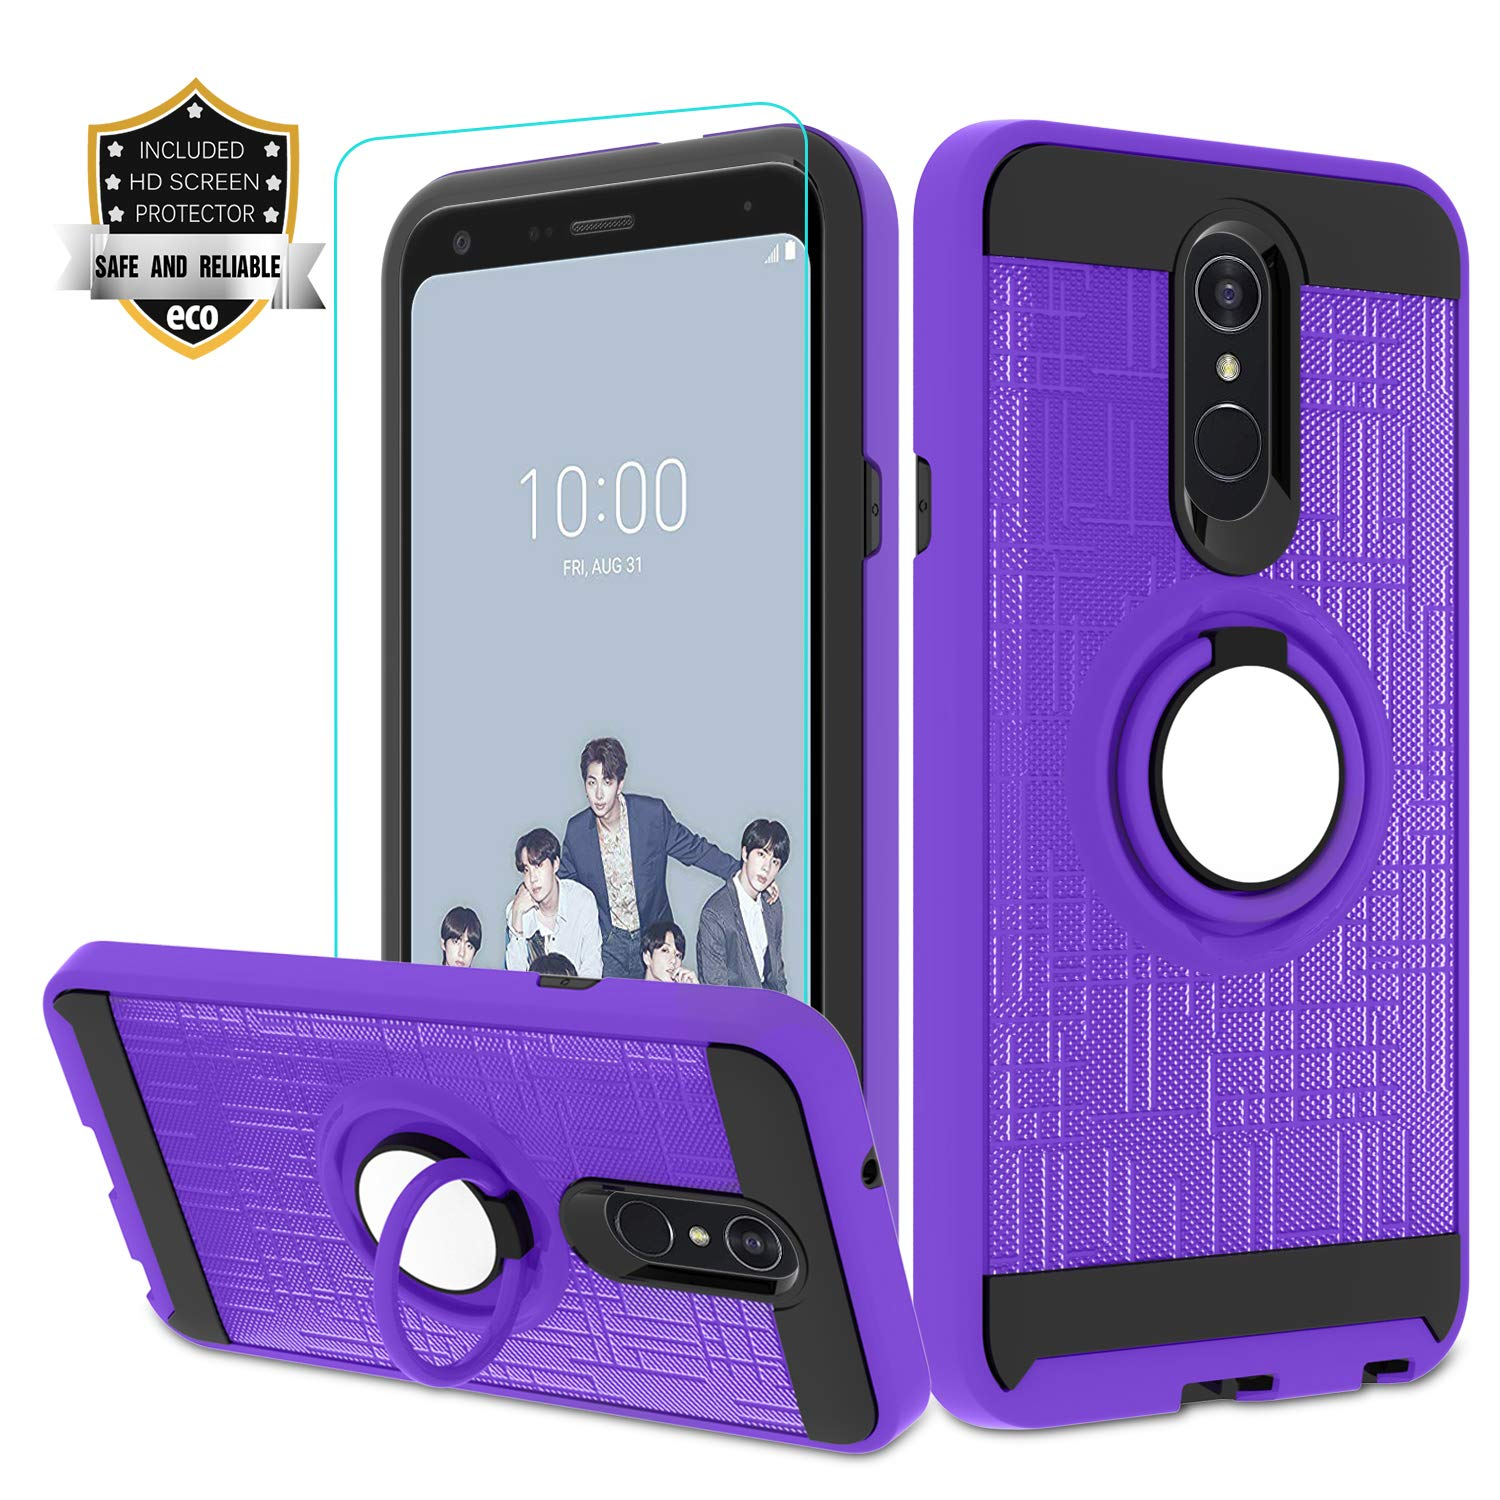 Funda + Vidrio Para Lg Q7 Case, Lg Q7 Plus Purpura